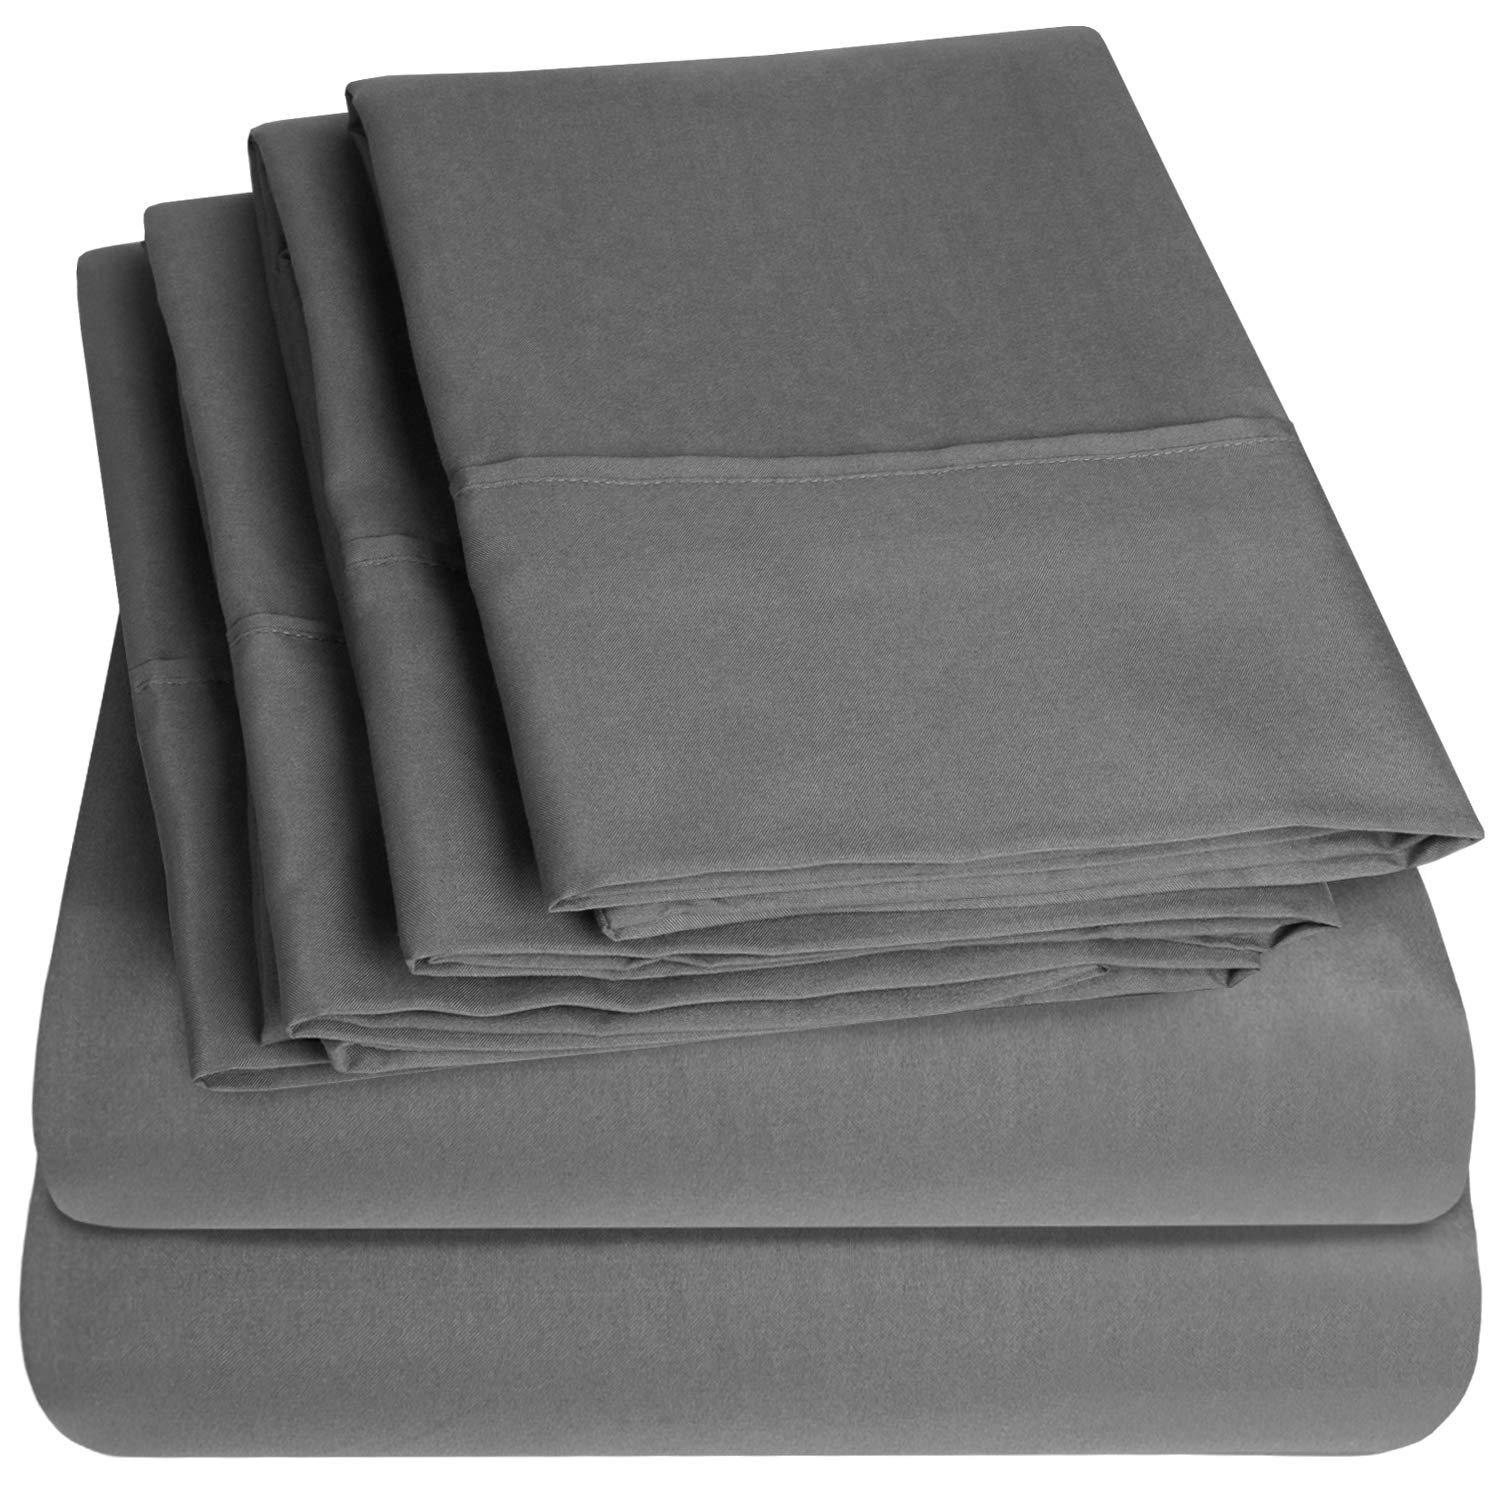 Bed Sheets Queen Size Grey